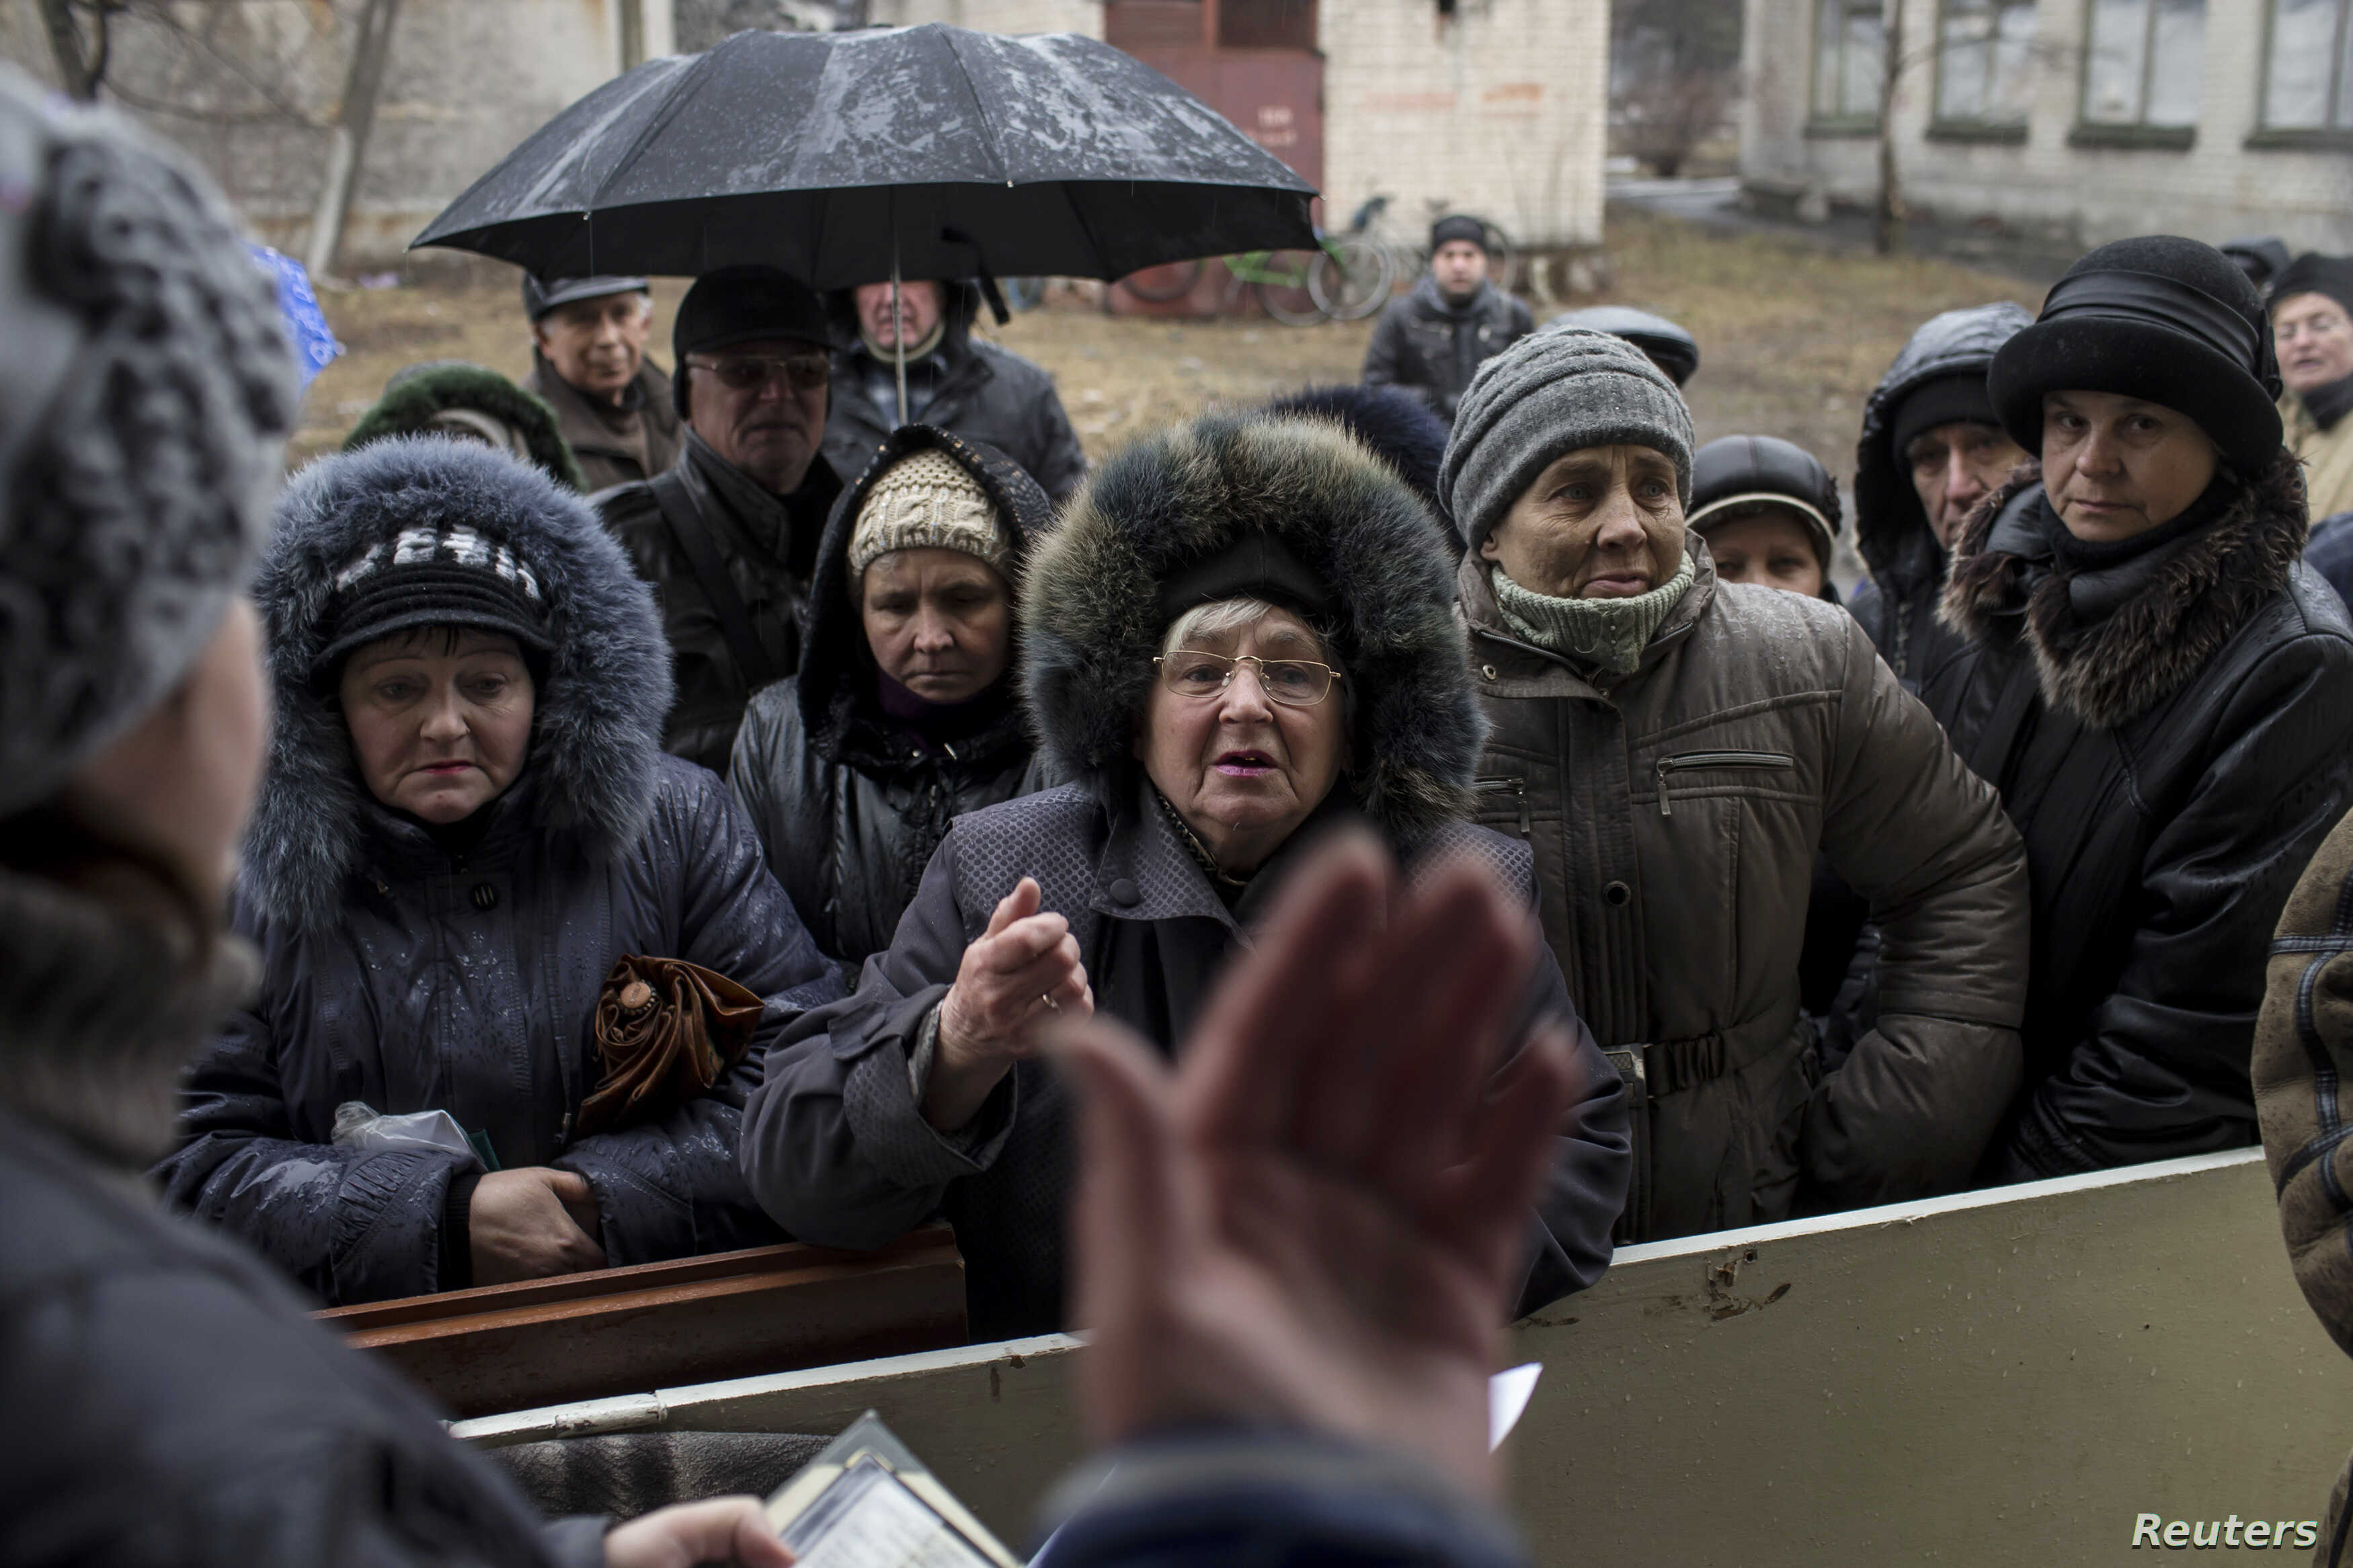 People queue to receive humatarian aid in the town of Debaltseve, north-east from Donetsk, March 13, 2015. REUTERS/Marko Djurica (UKRAINE - Tags: CIVIL UNREST CONFLICT) - RTR4T87G